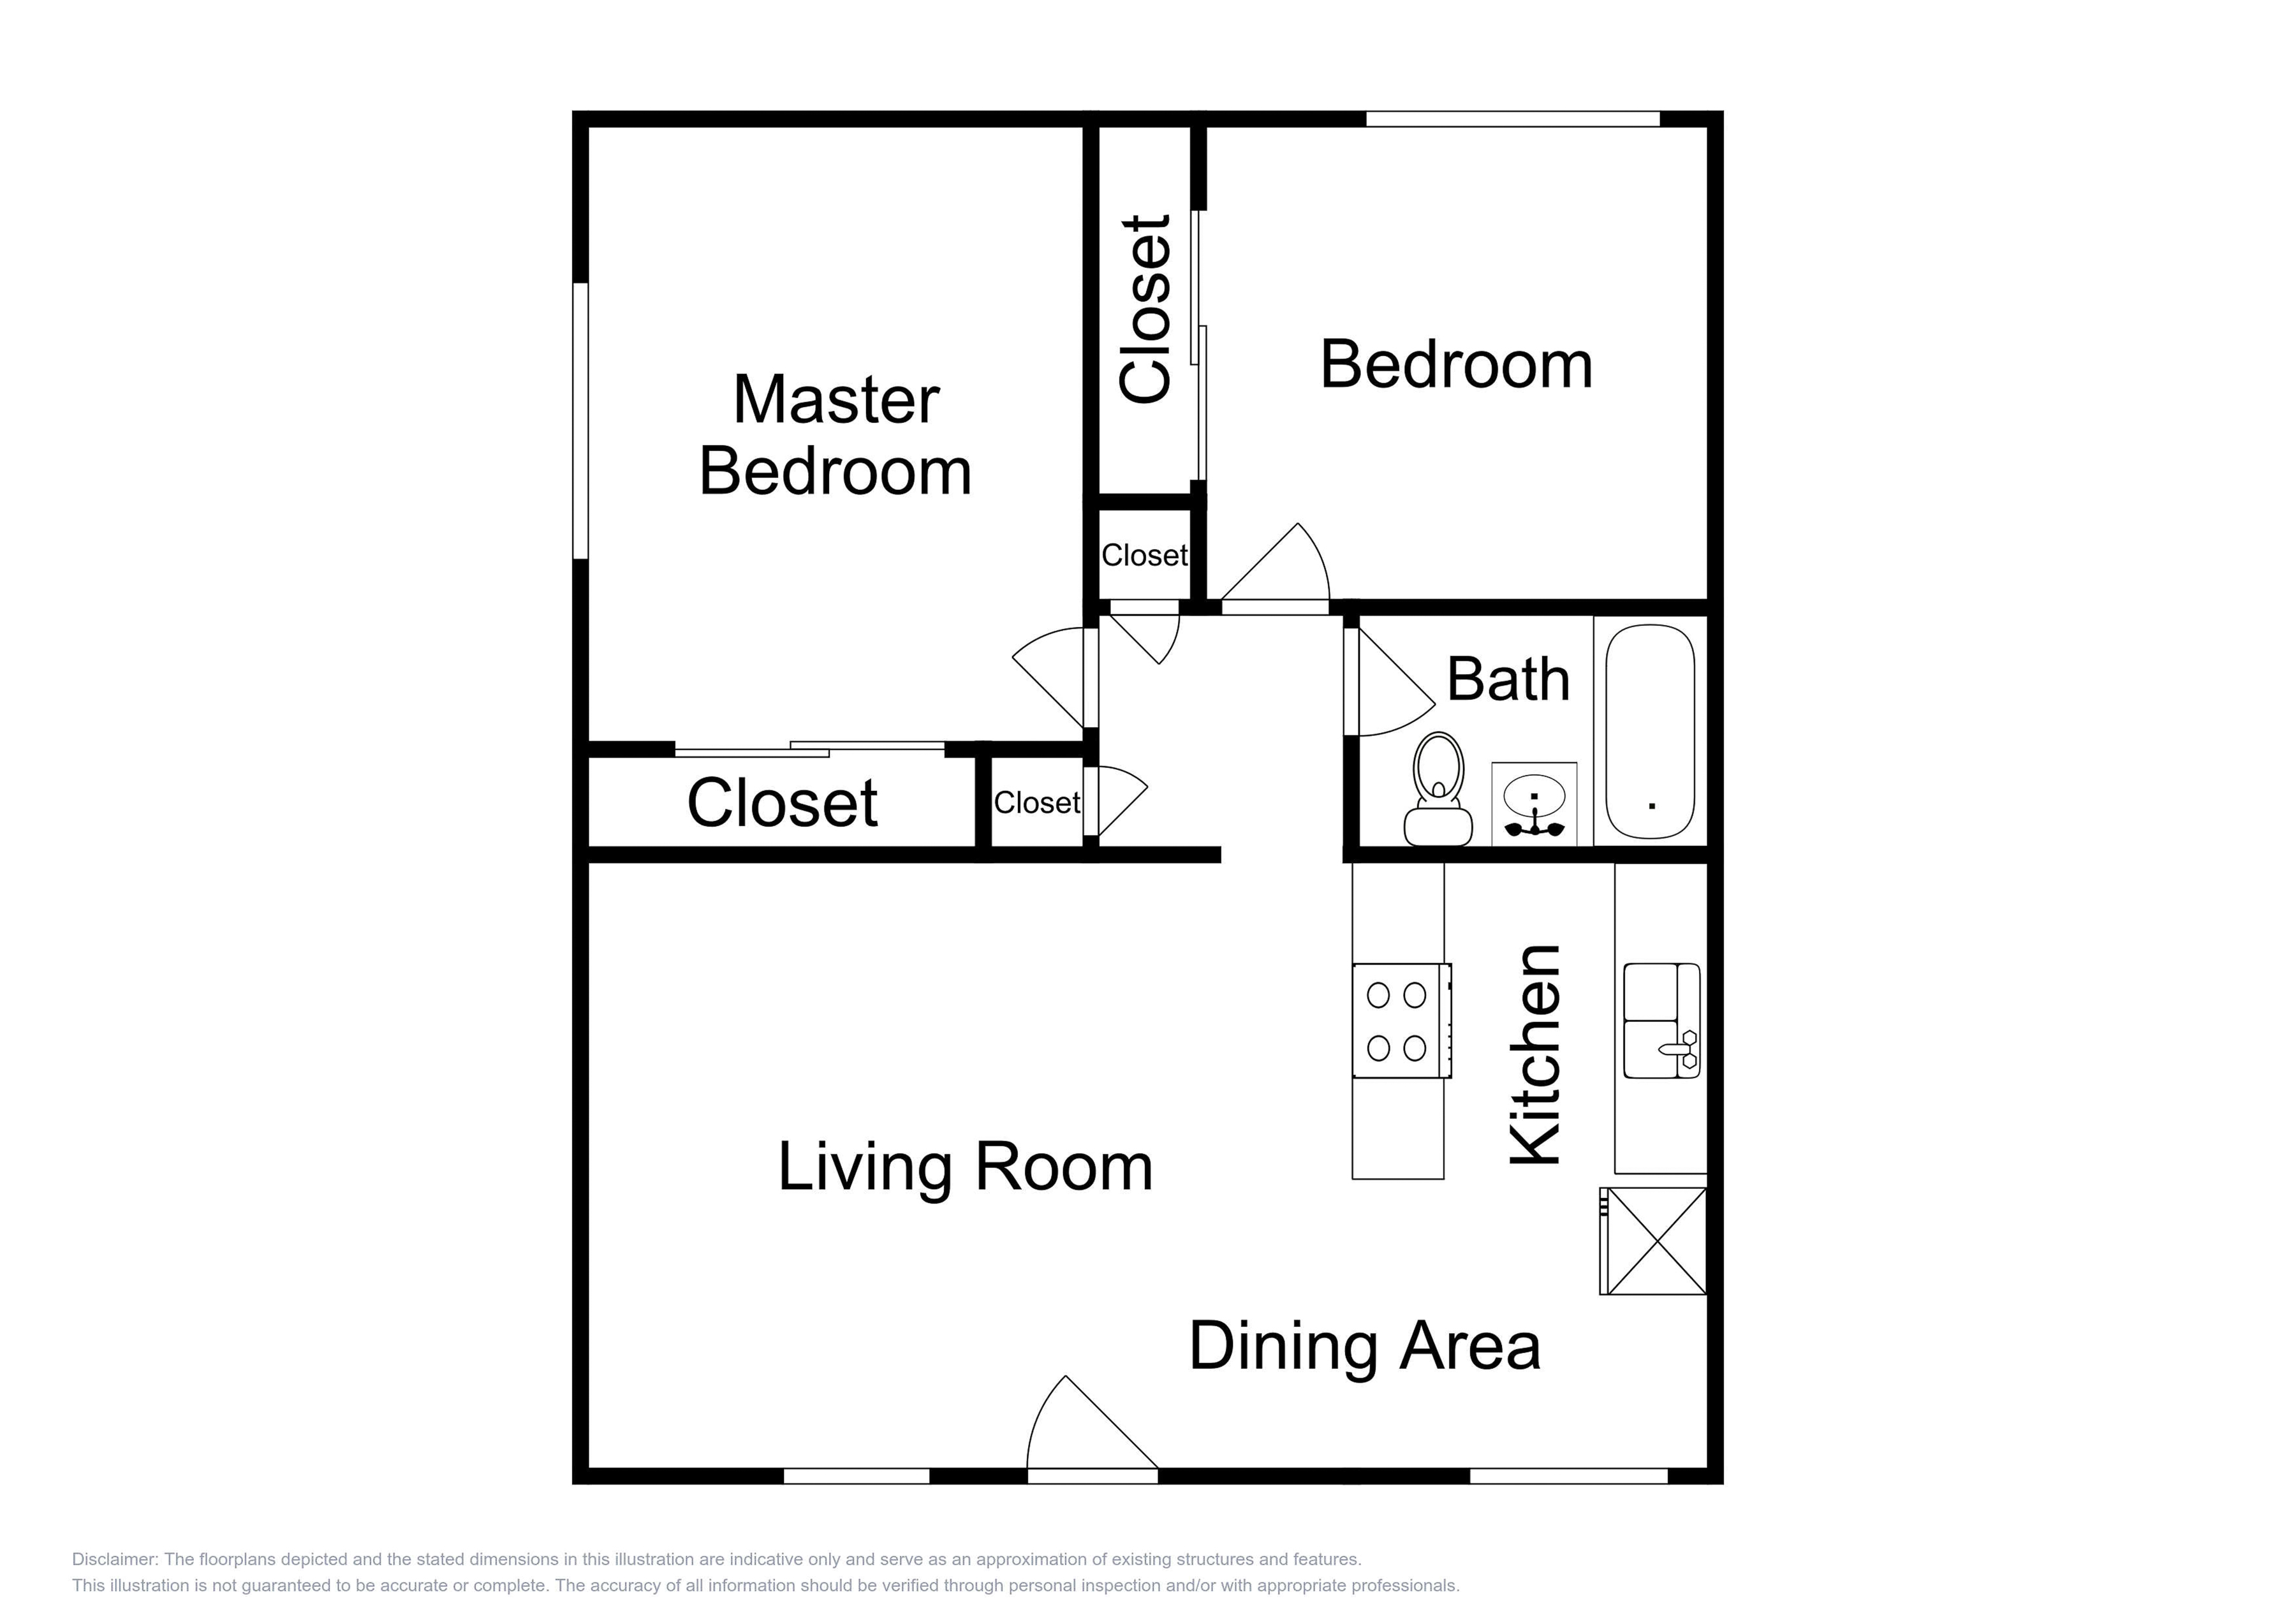 Apartment Units Diagram Trusted Wiring Diagrams 1332 Menton Ave C And D Ra186590 Redawning Electrical Residential Apartments